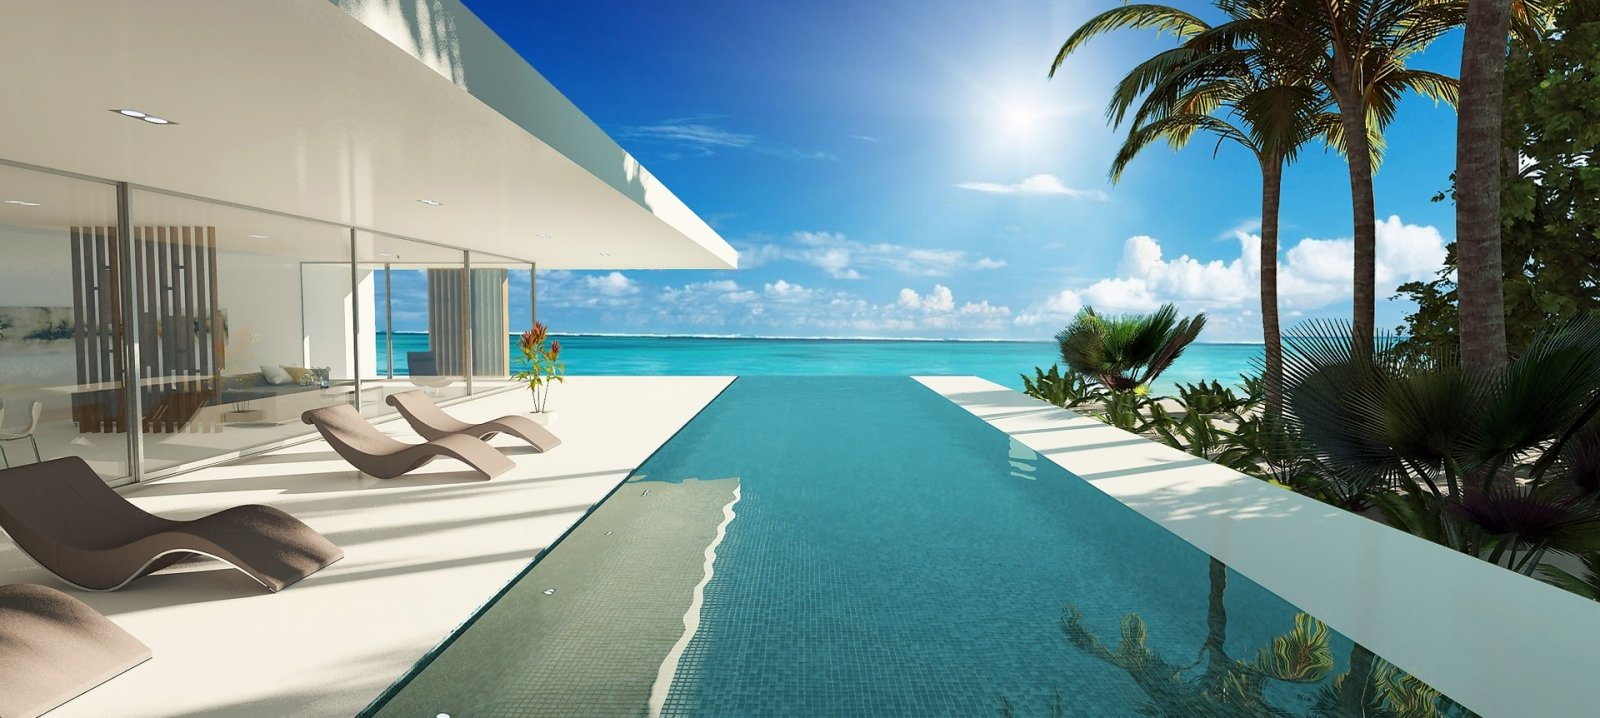 Gravenor Bay Resort Development - BARBUDA